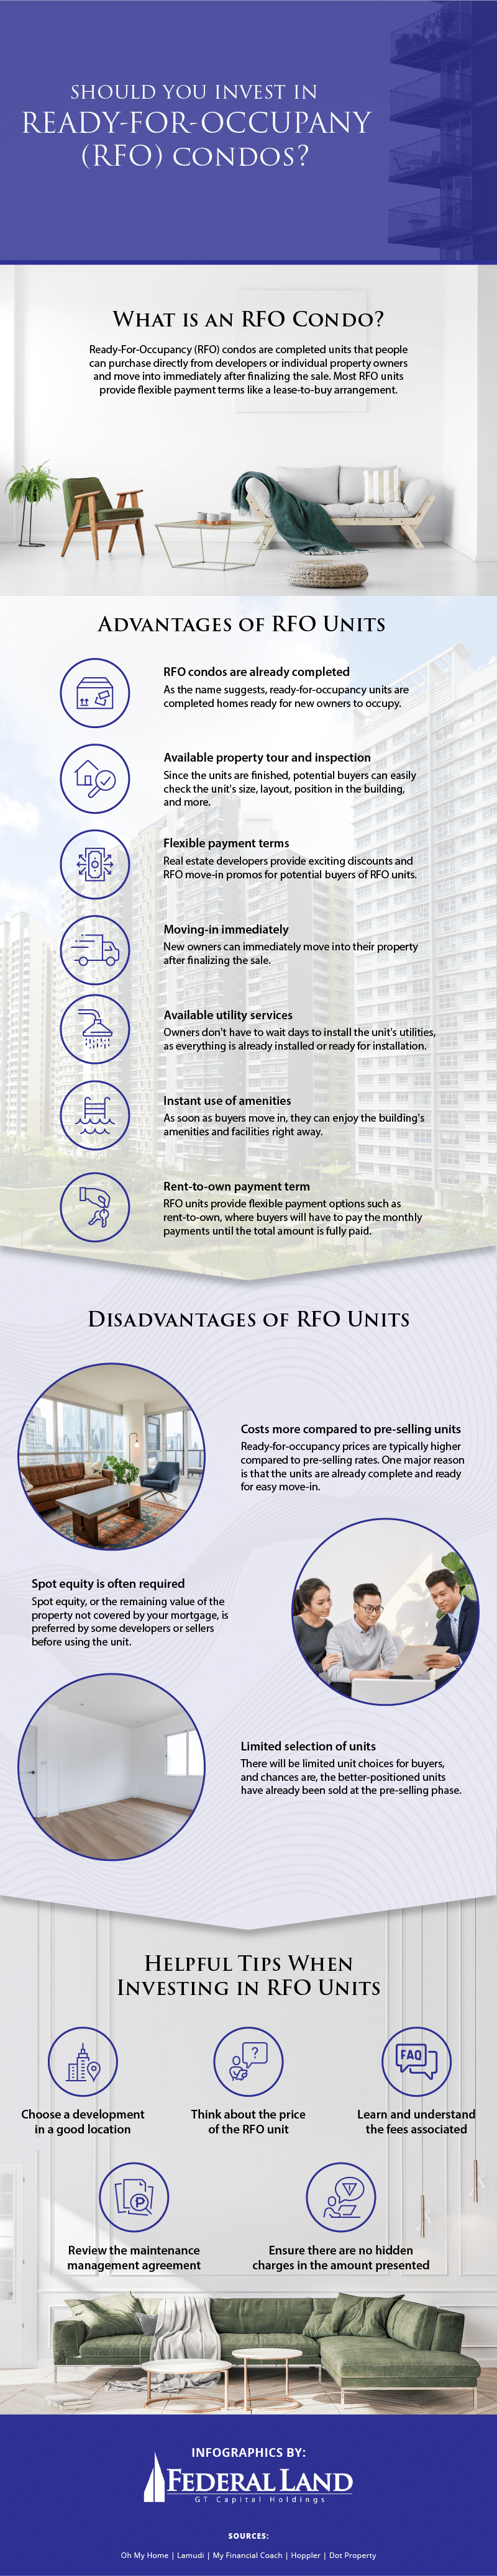 Should You Invest in Ready-For-Occupancy (RFO) Condos Infographic